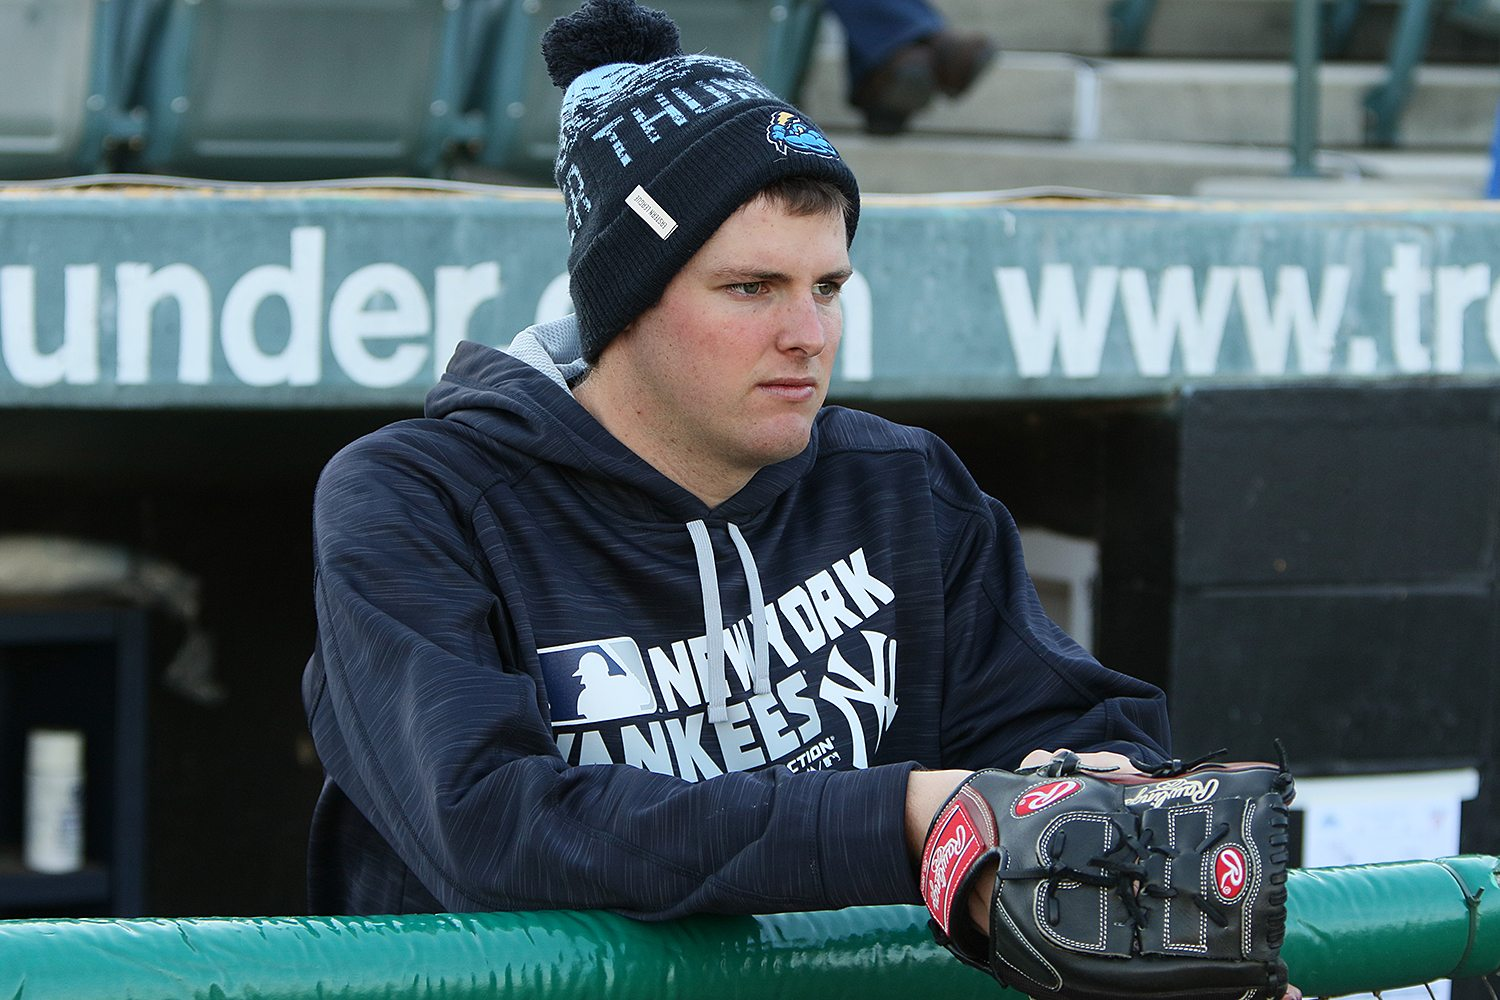 Last night's starting pitcher Jordan Montgomery in the Trenton Thunder dugout before a game against the Portland Sea Dogs at ARM & HAMMER Park in Trenton on Wednesday, April 13, 2016. Photo by Martin Griff